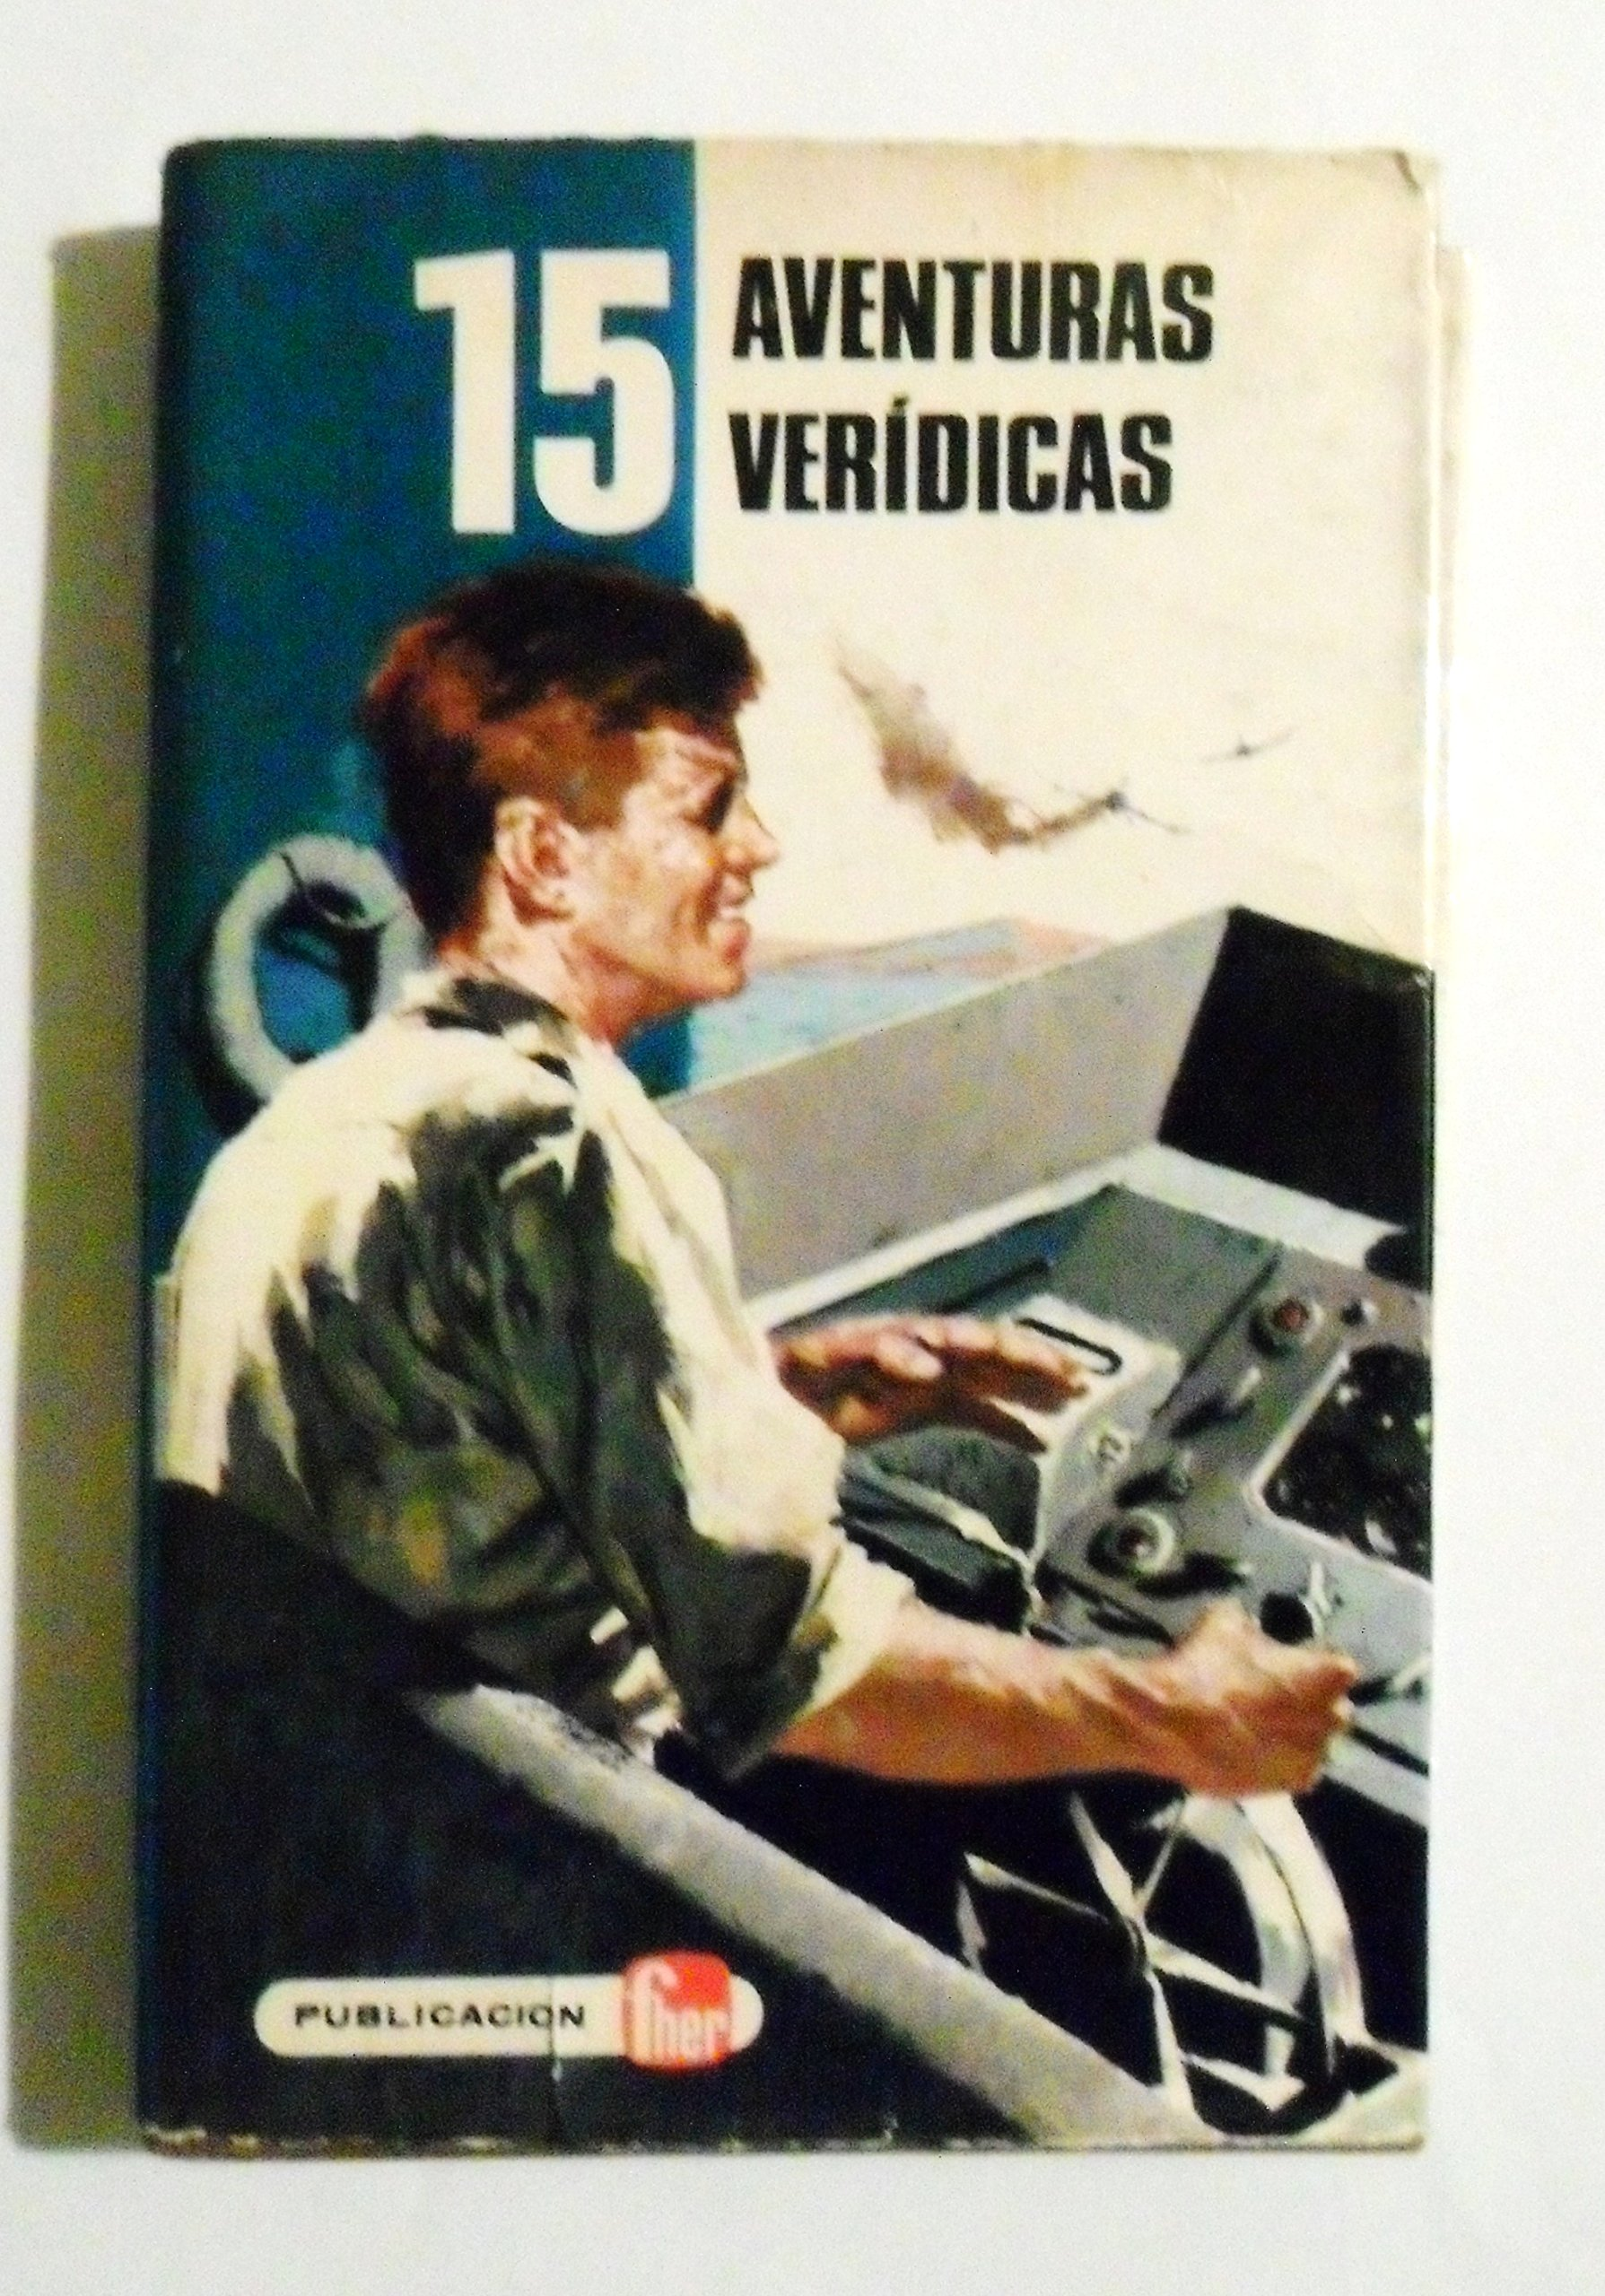 15 AVENTURAS VERIDICAS / EDITORIAL FHER, 1973.: Amazon.es: GEORGES BLOND, YVONNE GIRAULT, CLAUDE APPELL, PAUL COGAN, FHER: Libros